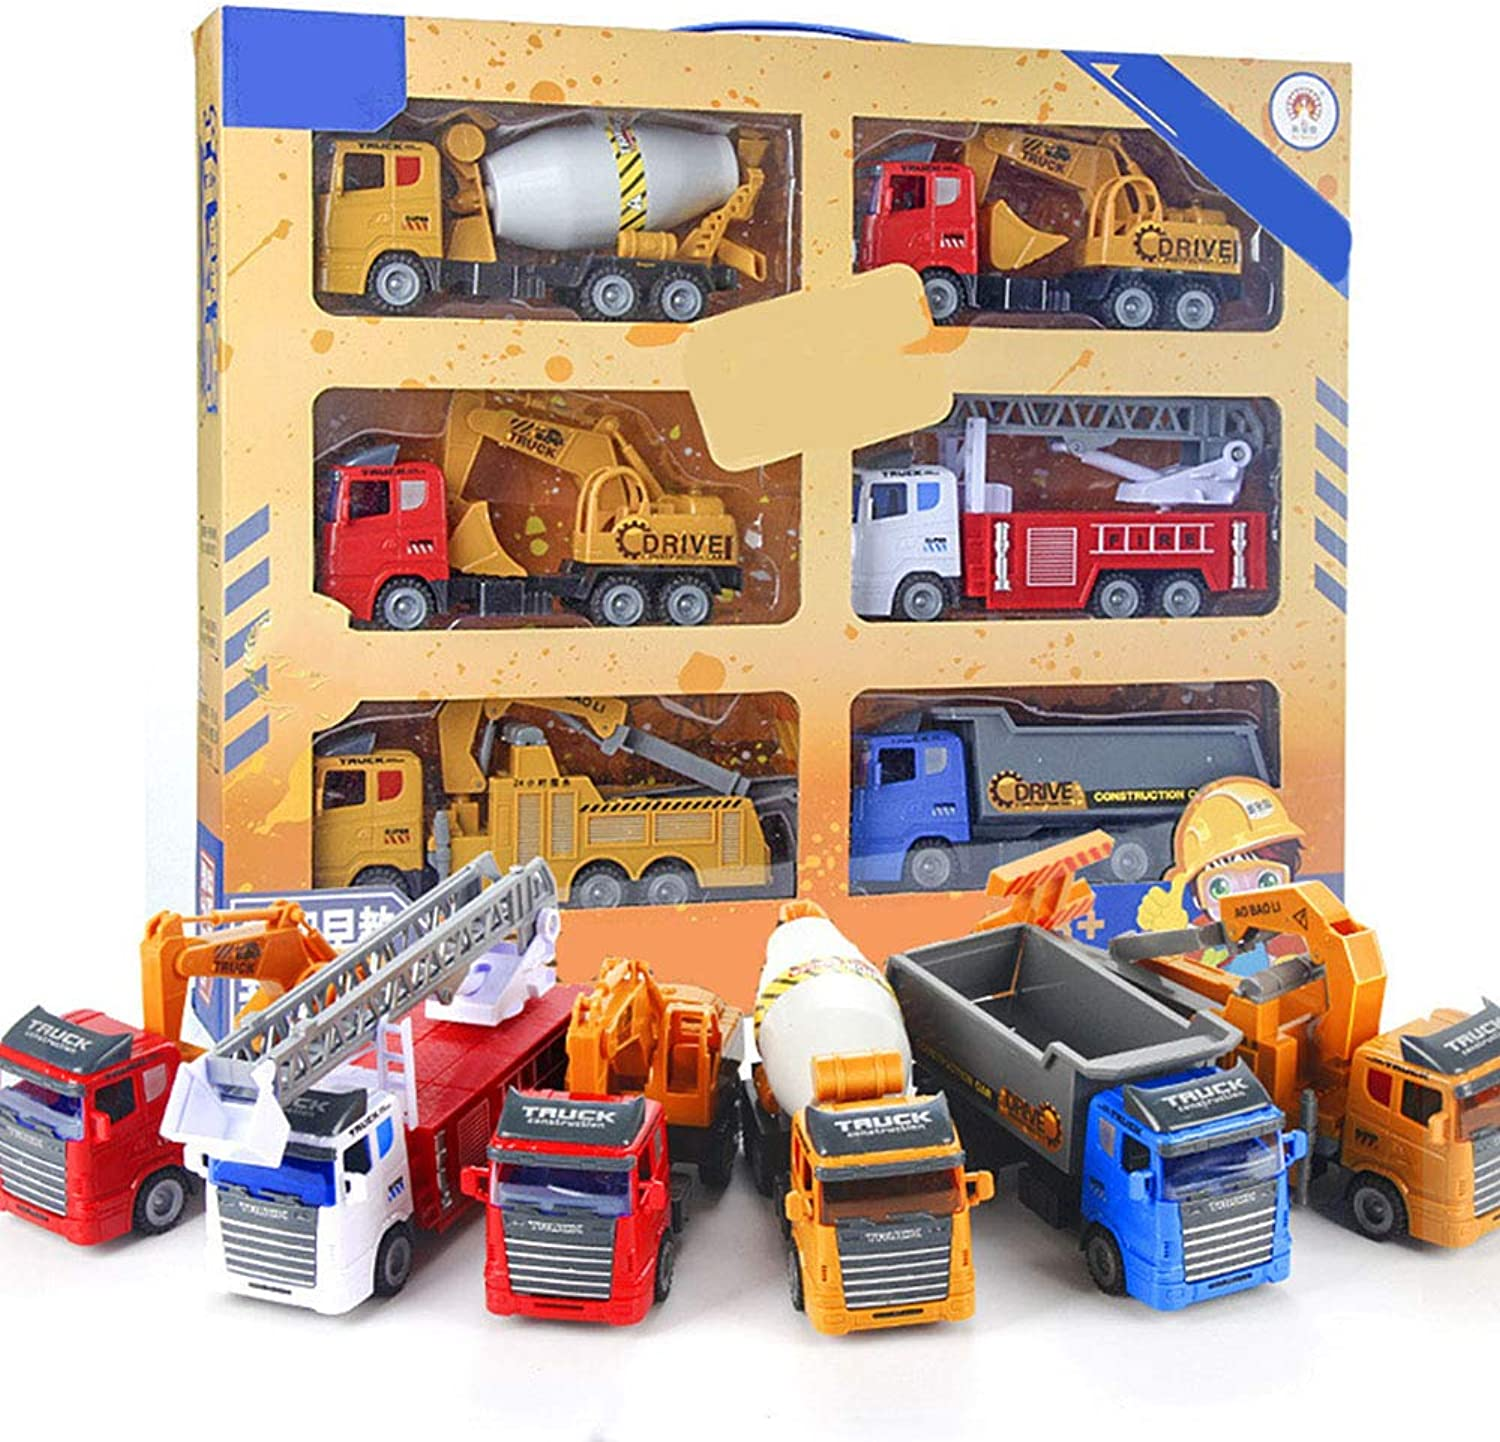 AOTED Inertia Engineering Vehicle, Simulation Car Model Excavator Toy Truck Dump Truck Cement Tanker 6Piece sSet Boy Girl Gift